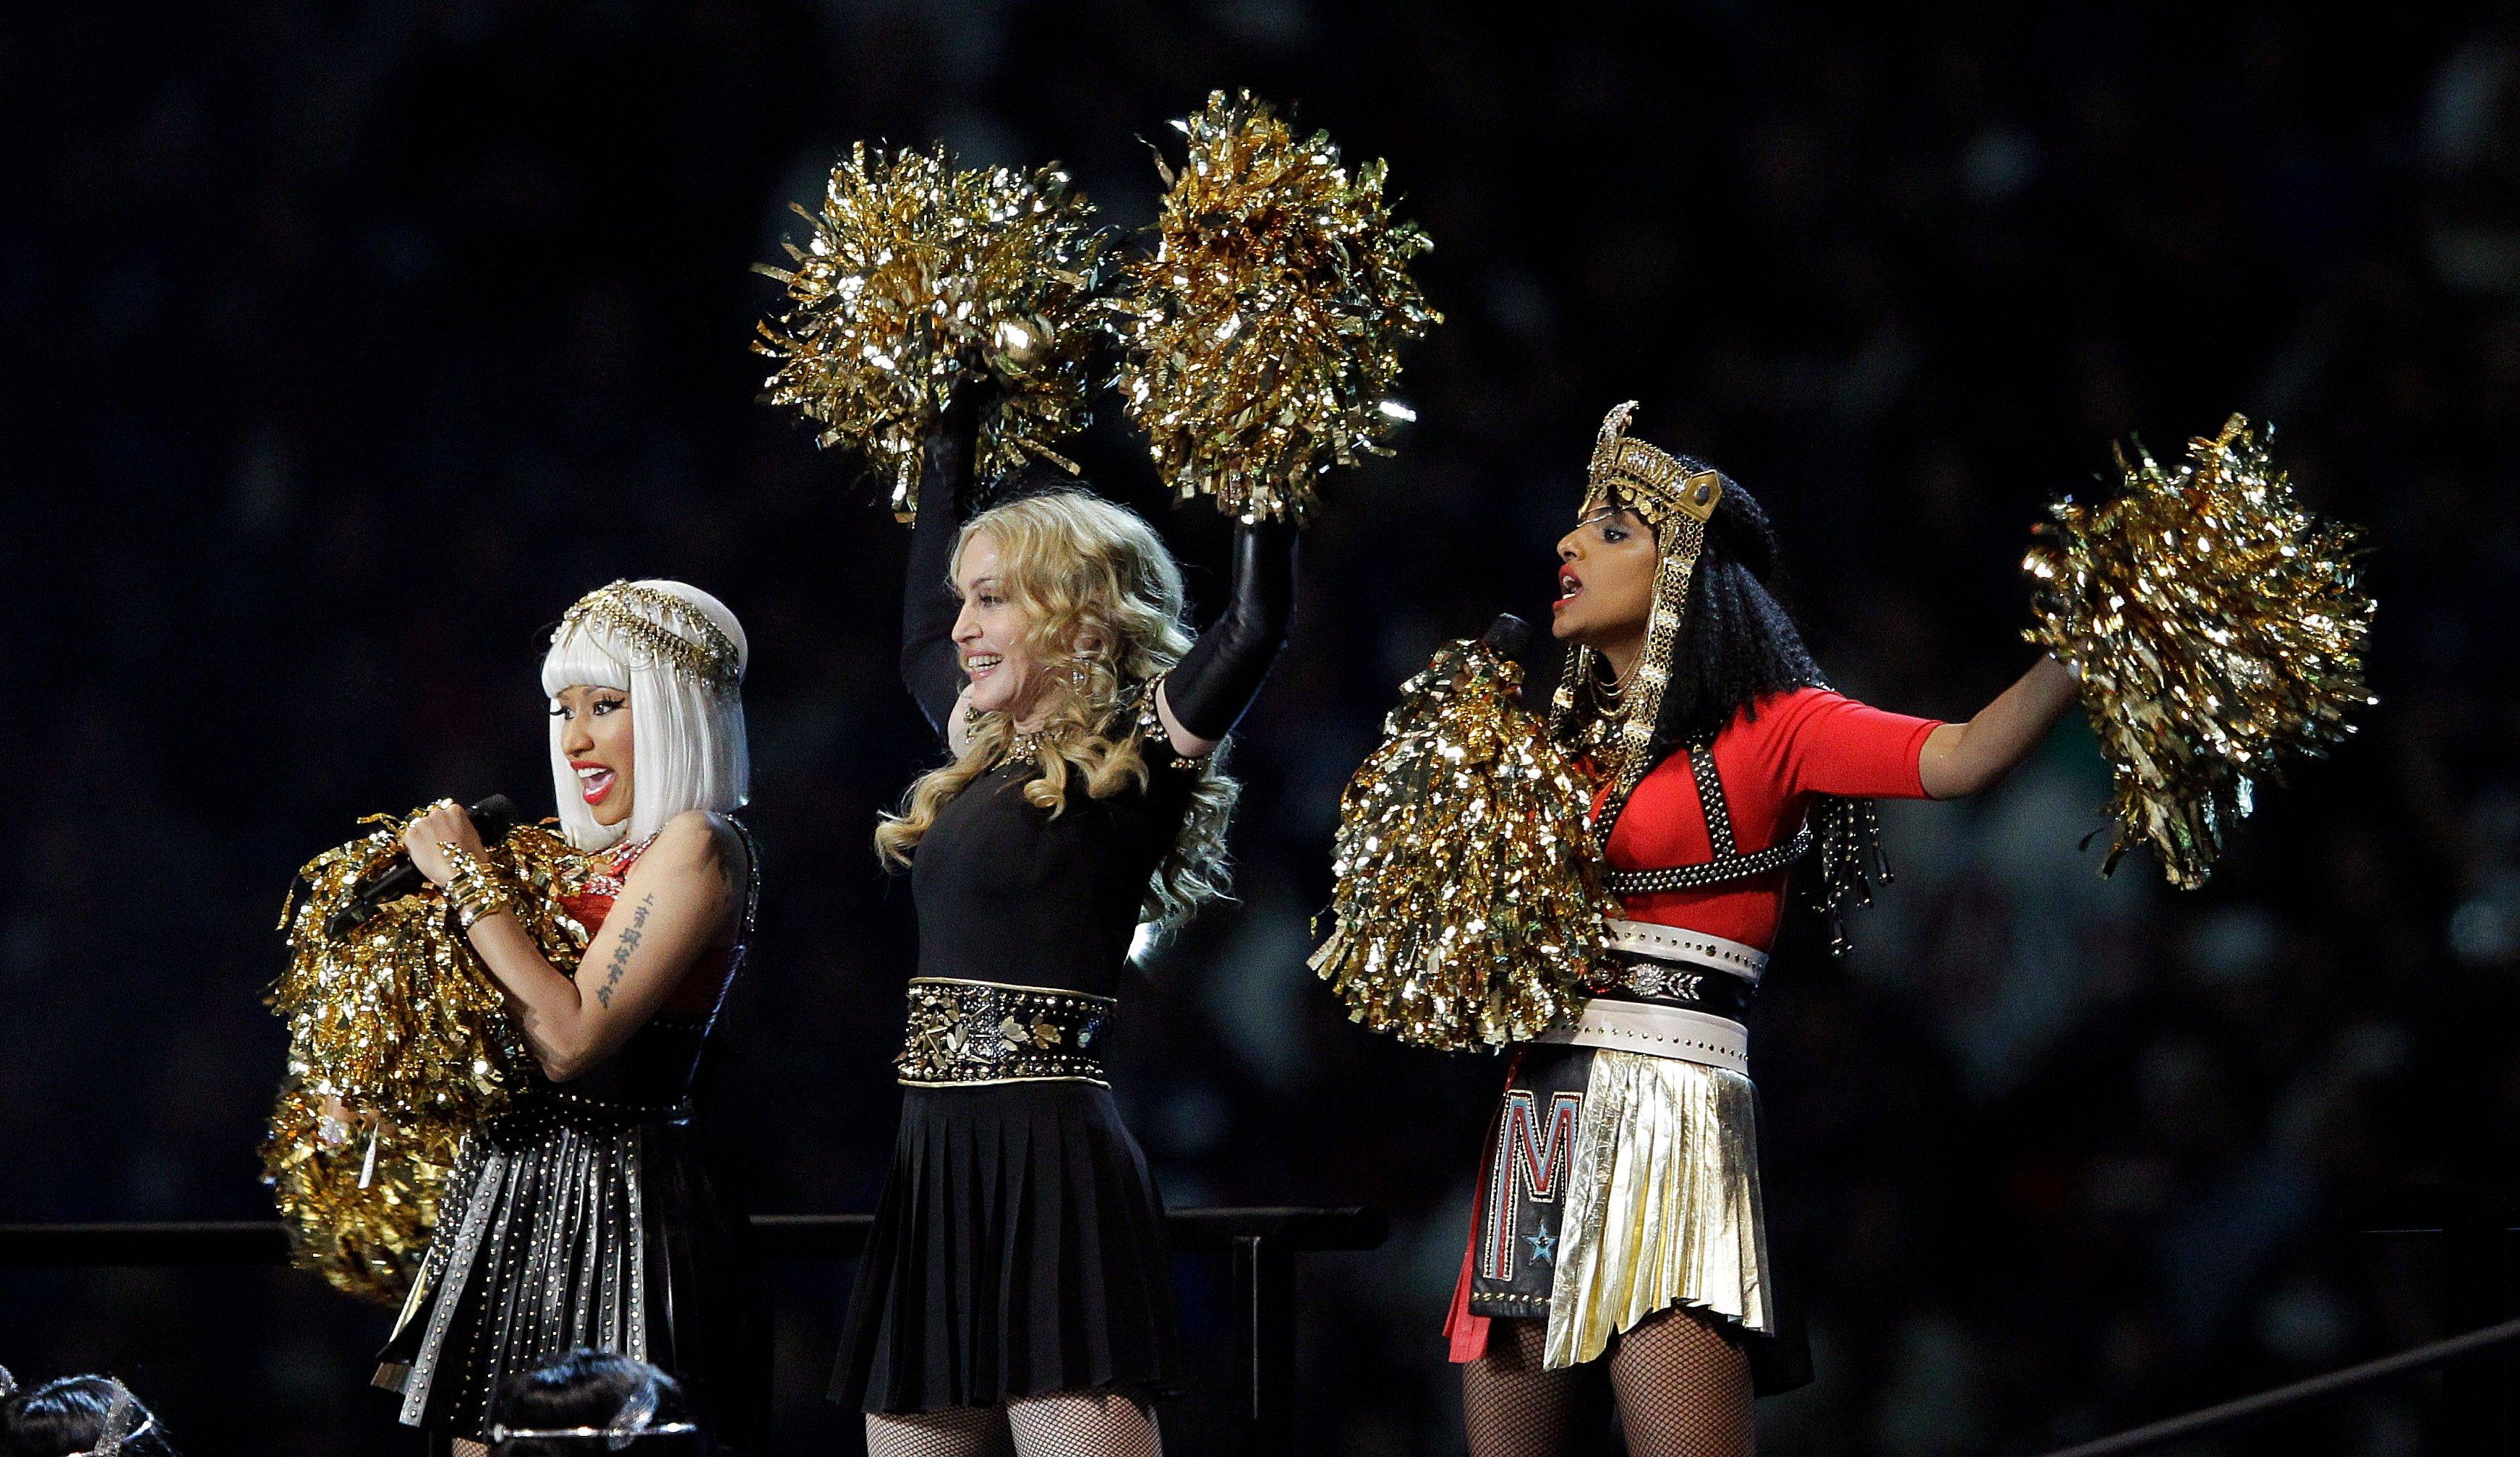 Madonna, center, performs with Nicki Minaj, left, and M.I.A. during halftime of the NFL Super Bowl XLVI football game.